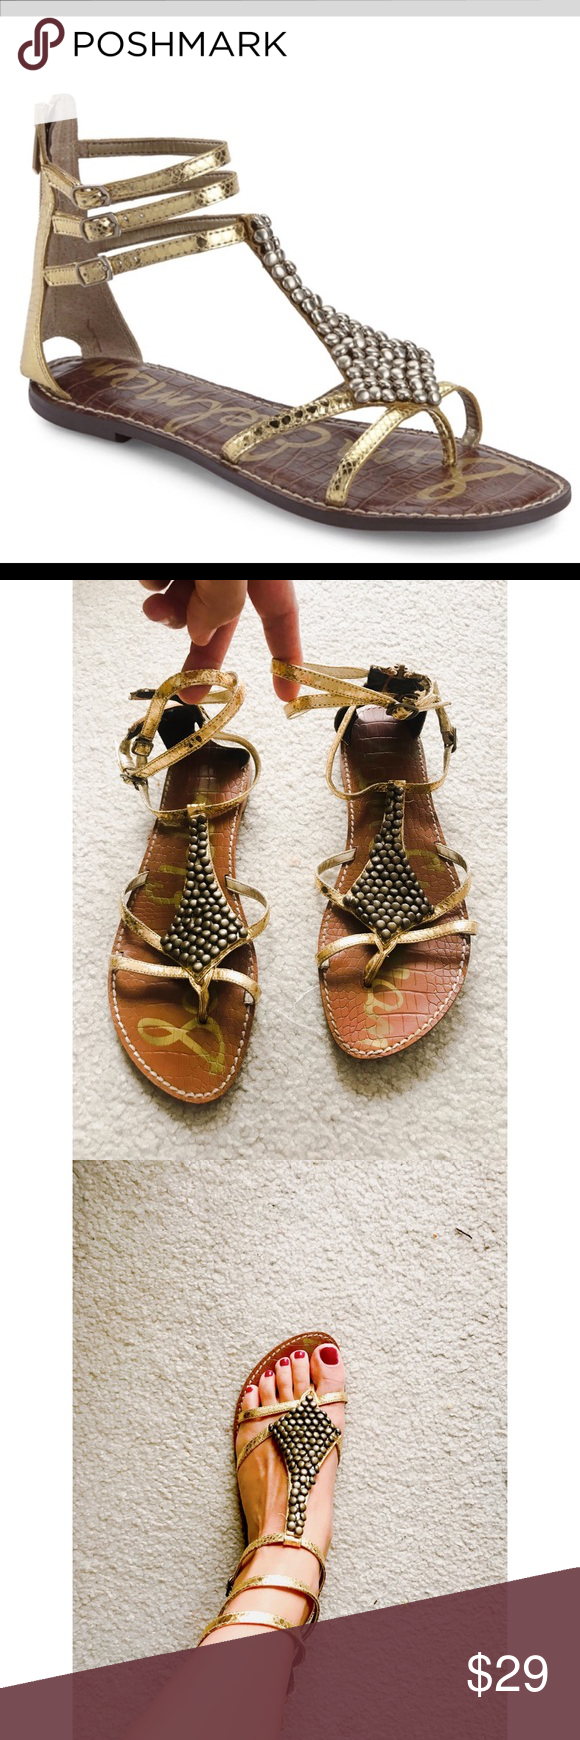 7decda00726 Sam Edelman Gold Ginger Gladiator Sandals Sam Edelman Gold Ginger Gladiator  Sandals. Super cute gold